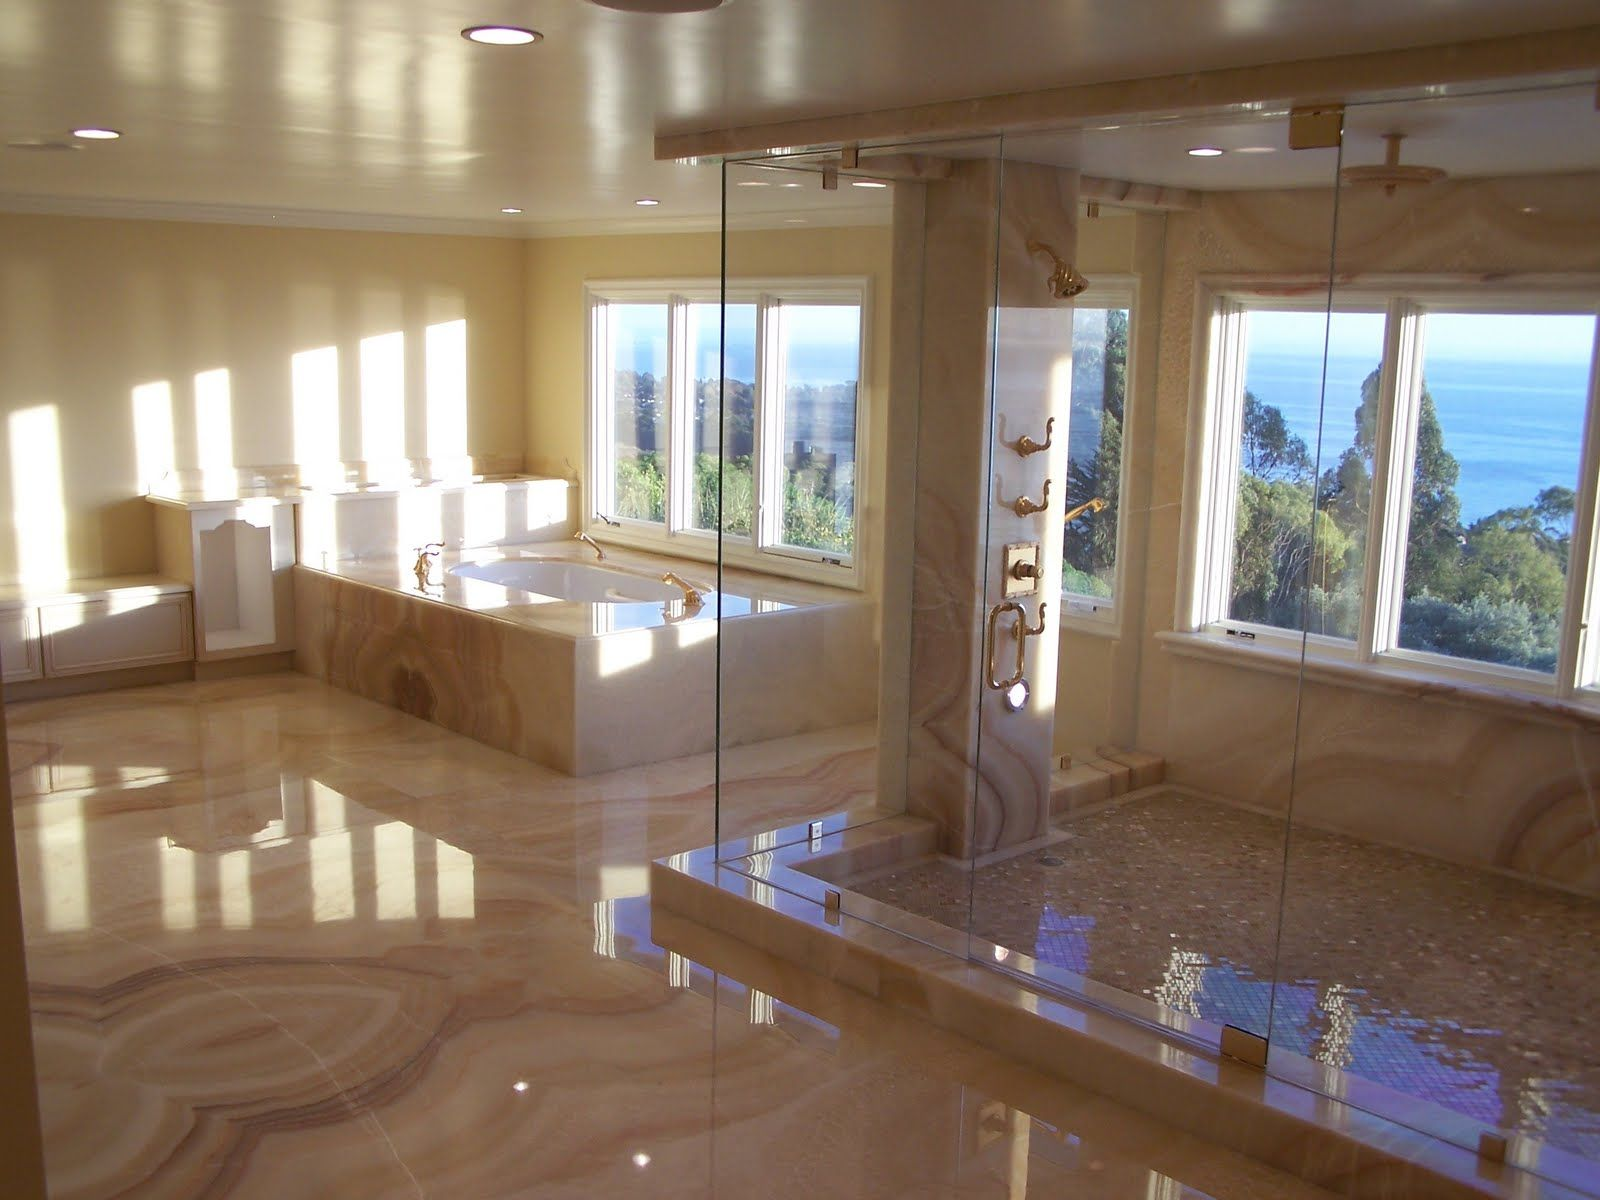 view bathroom ideas%0A Bathroom Interior   Awesome Pictures Of Big Bathroom Designs With Luxurious  Furniture  Outstanding Beige Marble Tile On Big Bathroom Designs With White  Tub